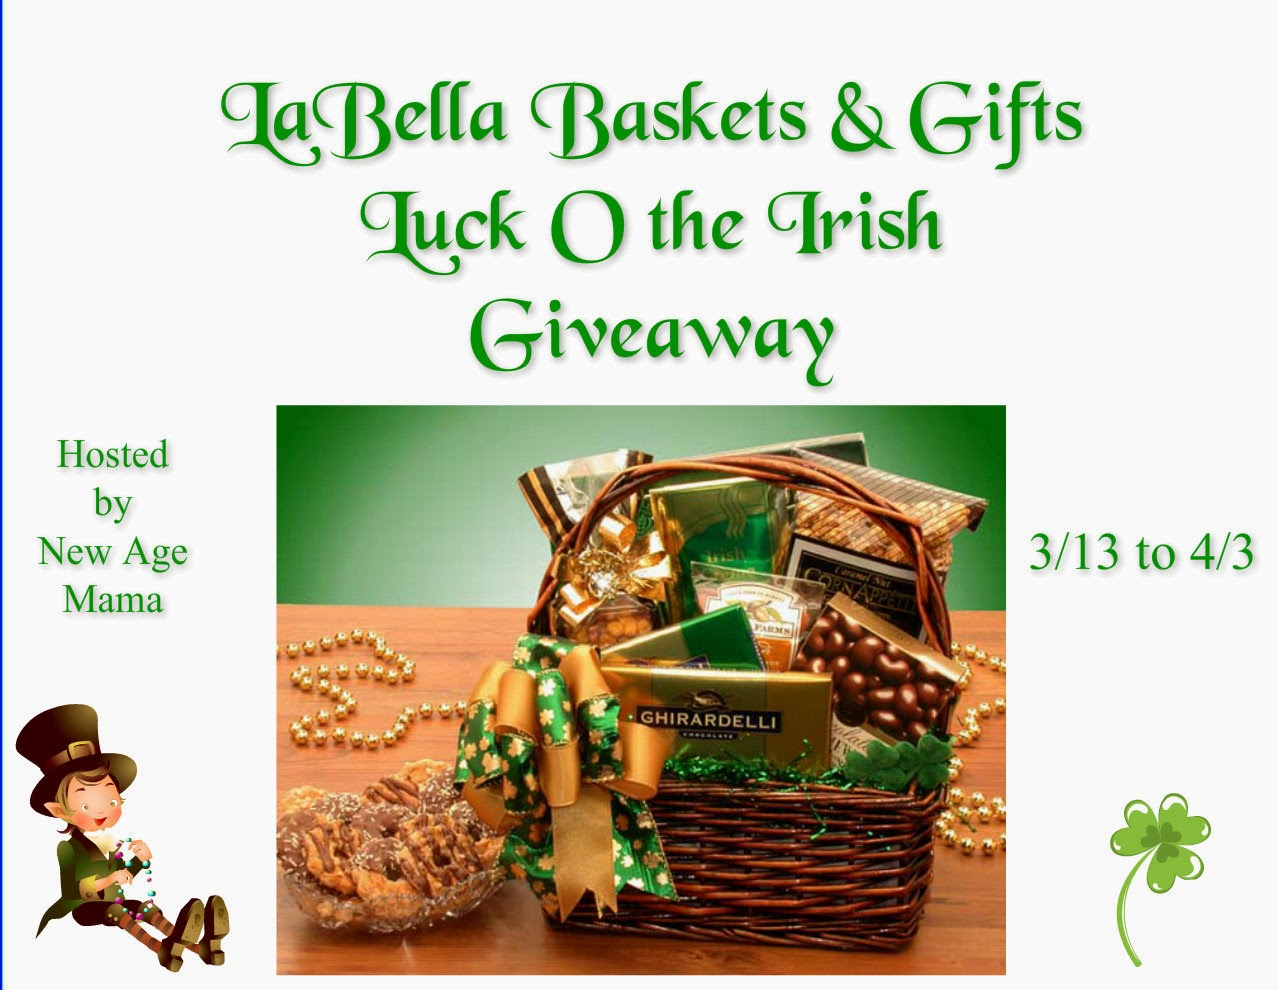 Enter the LaBella Baskets & Gifts Luck O the Irish Giveaway. Ends 4/3.